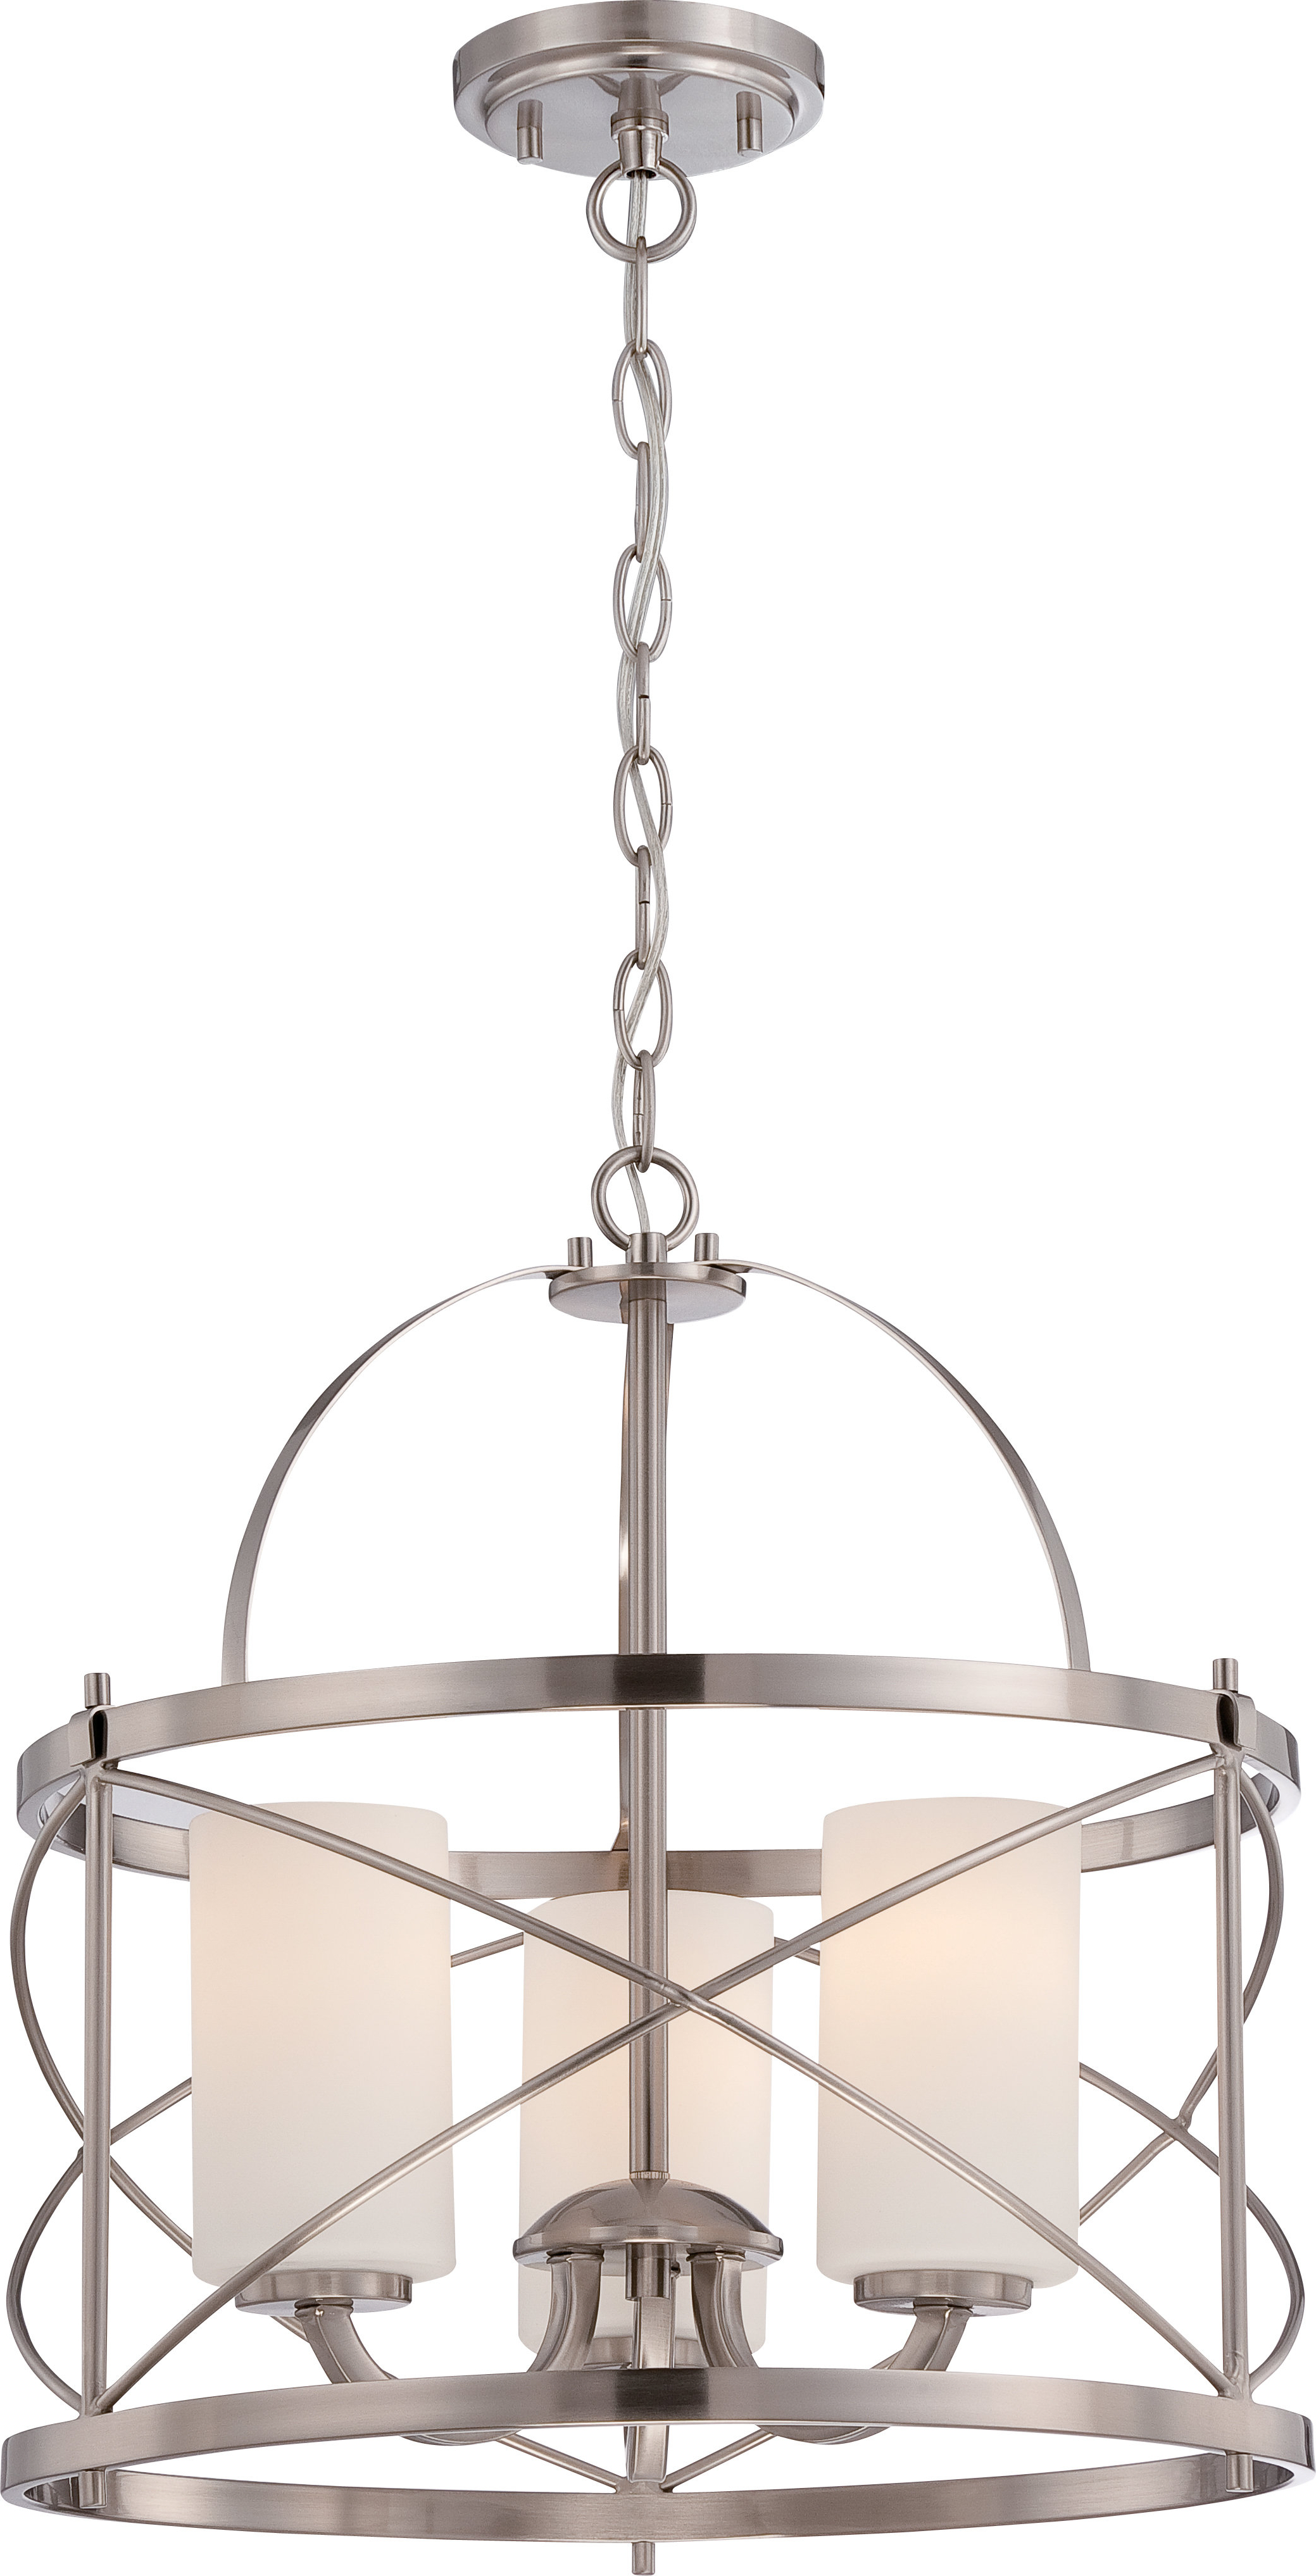 Recent Darby Home Co Farrier 3 Light Lantern Drum Pendant & Reviews Pertaining To Farrier 3 Light Lantern Drum Pendants (View 19 of 20)